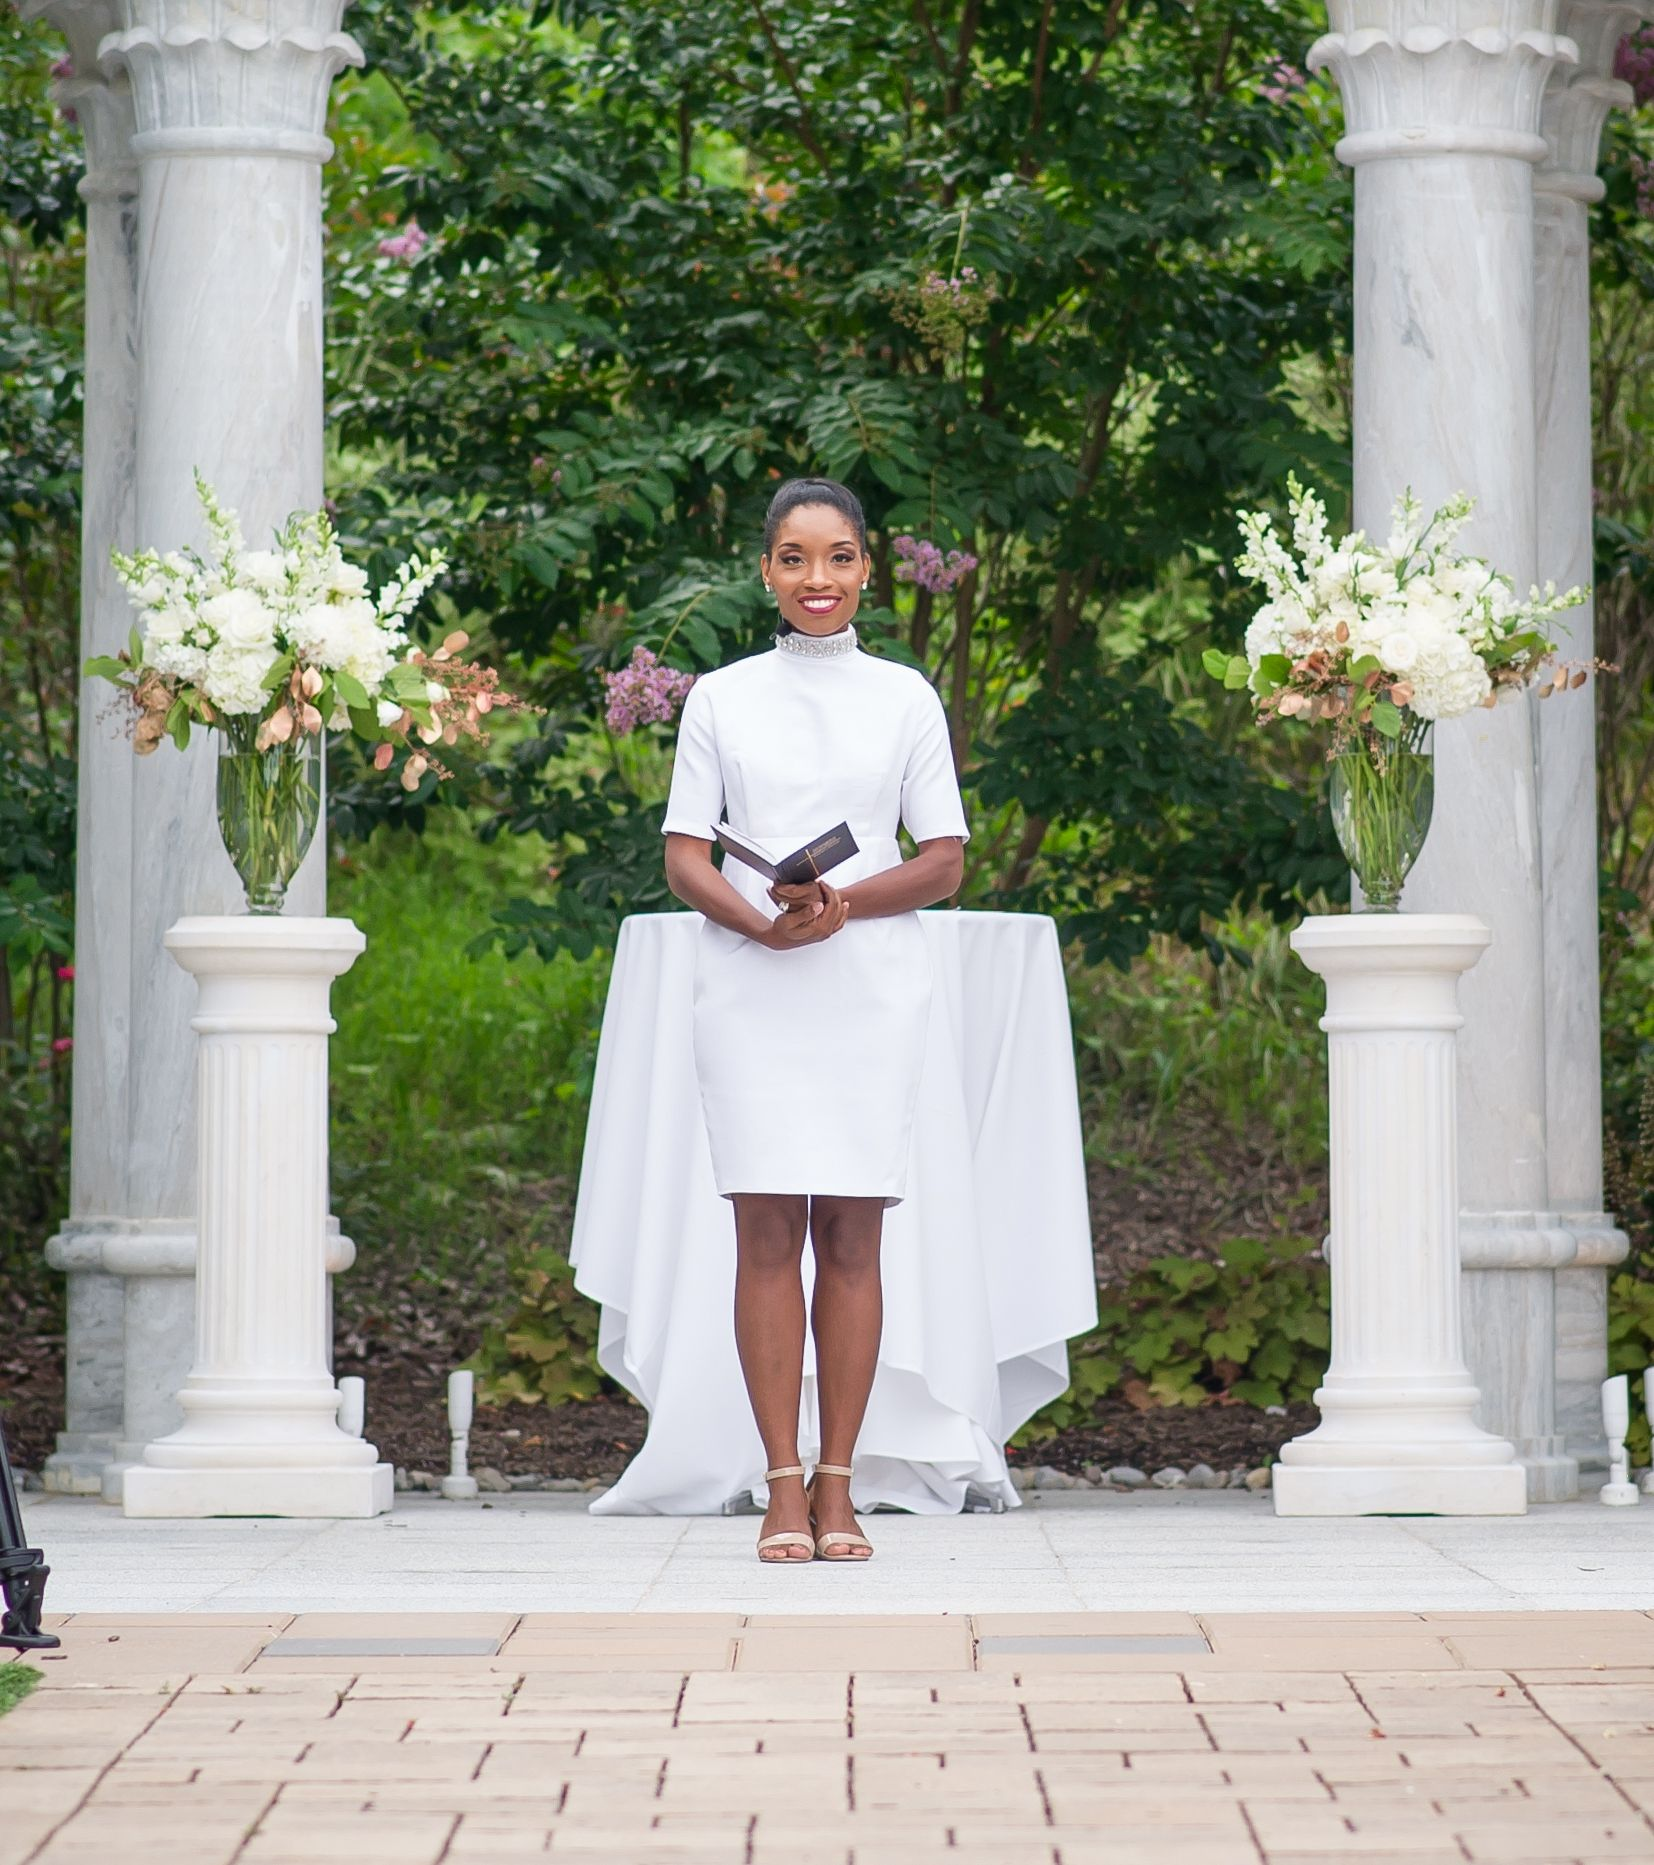 What A Delight It Is To Know That Your Wedding Officiant Offers More Than Just Showing Up On Wedding Day To Cond Wedding Tips Blogger Wedding Wedding Officiant